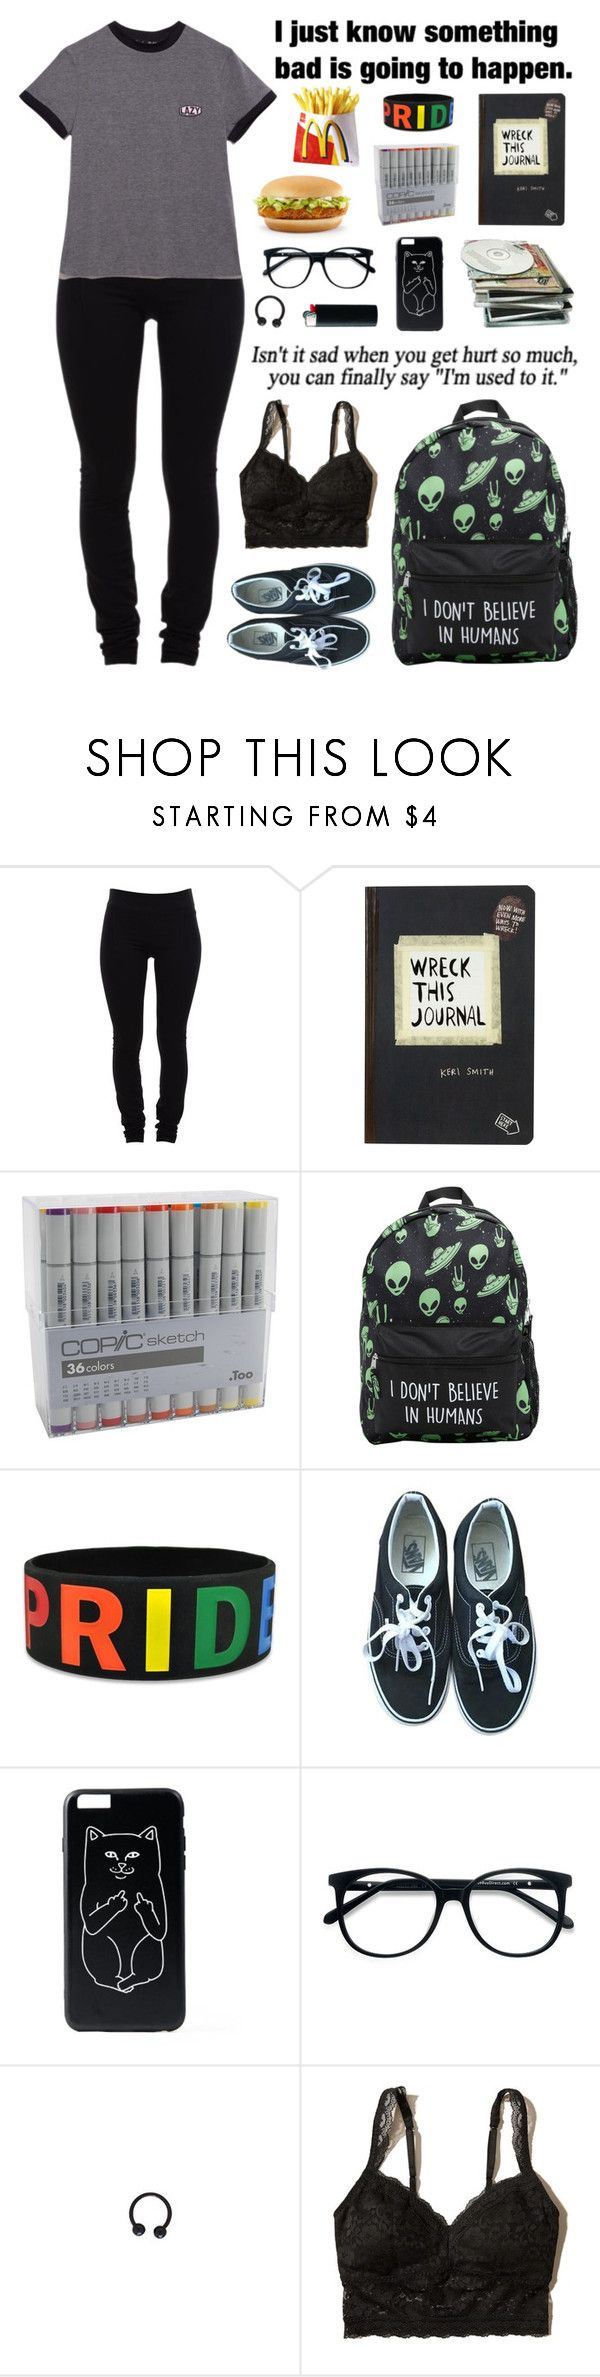 """""""Constant Headache"""" by melancholymaven ❤ liked on Polyvore featuring Helmut Lang, Lazy Oaf, Vans, EyeBuyDirect.com and Hollister Co."""